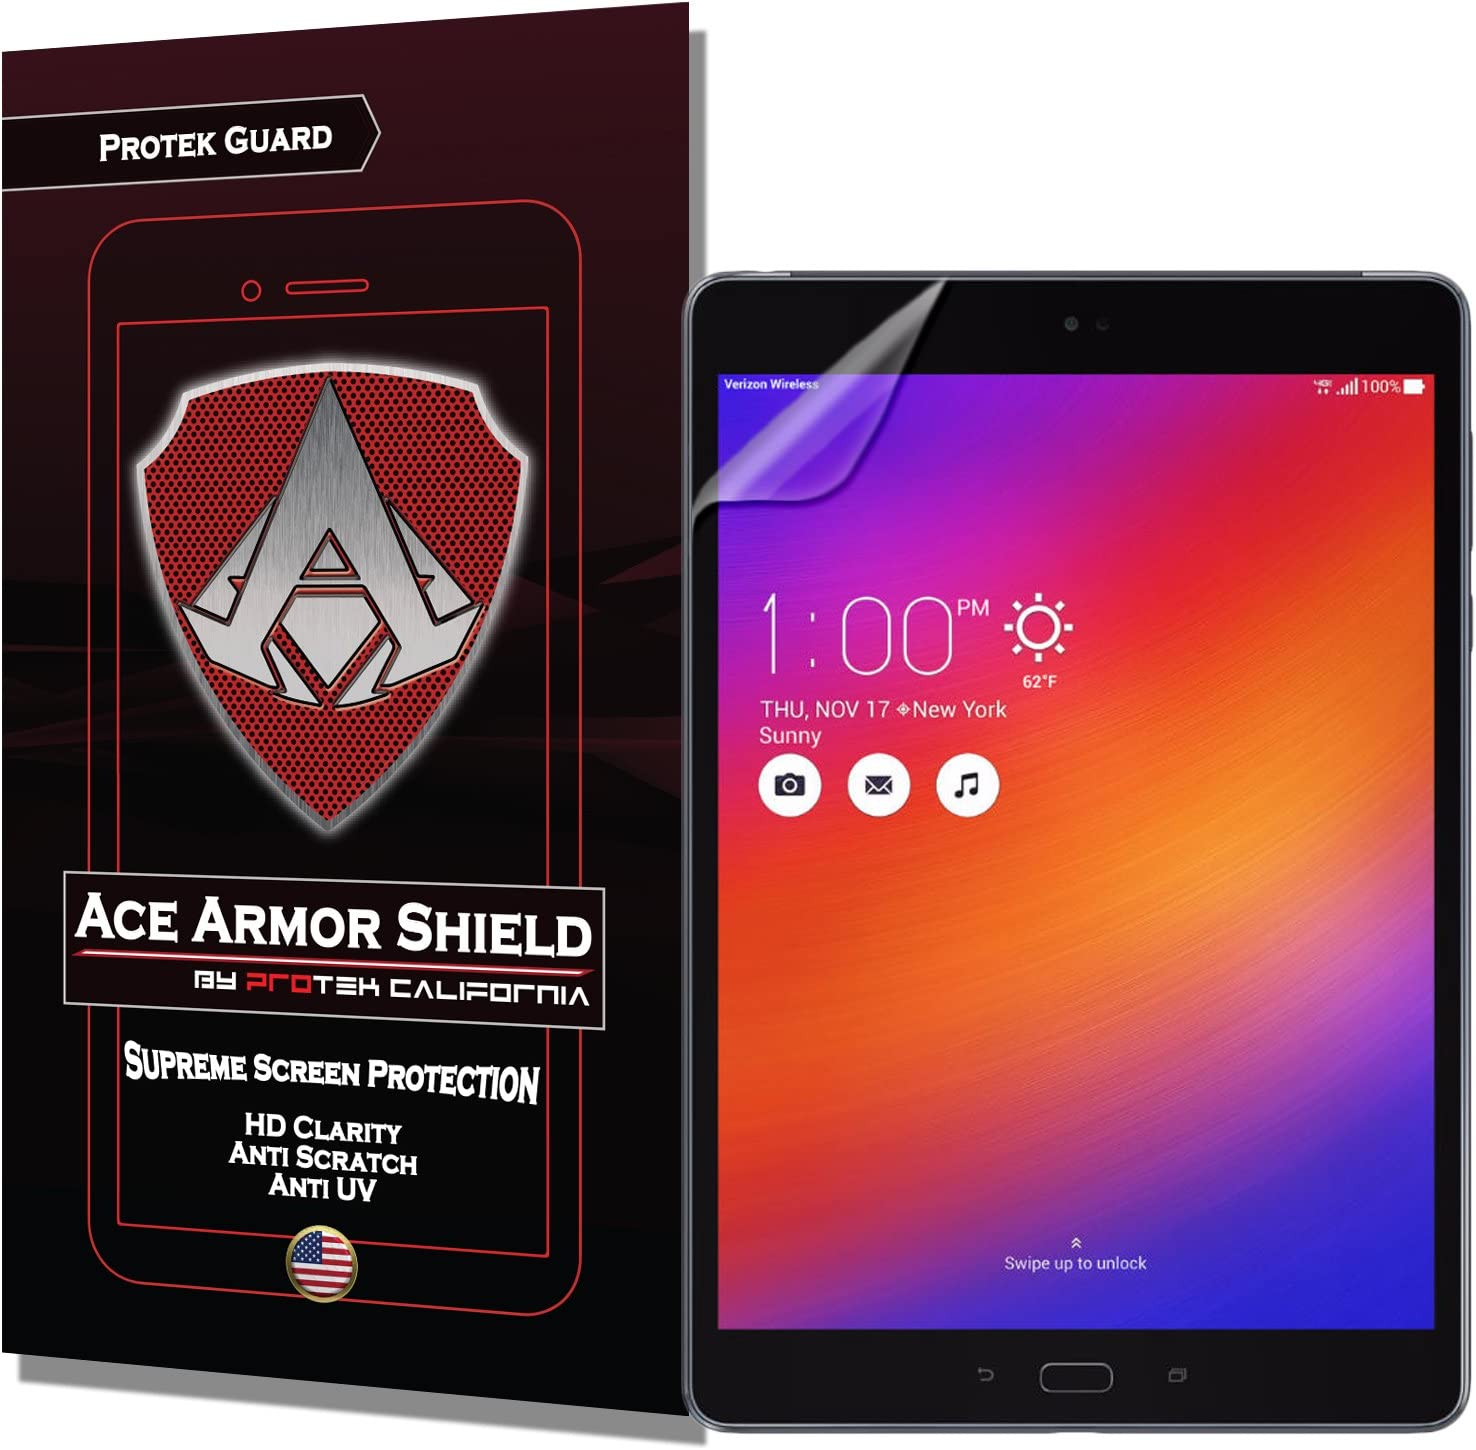 Ace Armor Shield Protek Guard Screen Protector for The Asus ZenPad Z10 with Free Lifetime Replacement Warranty